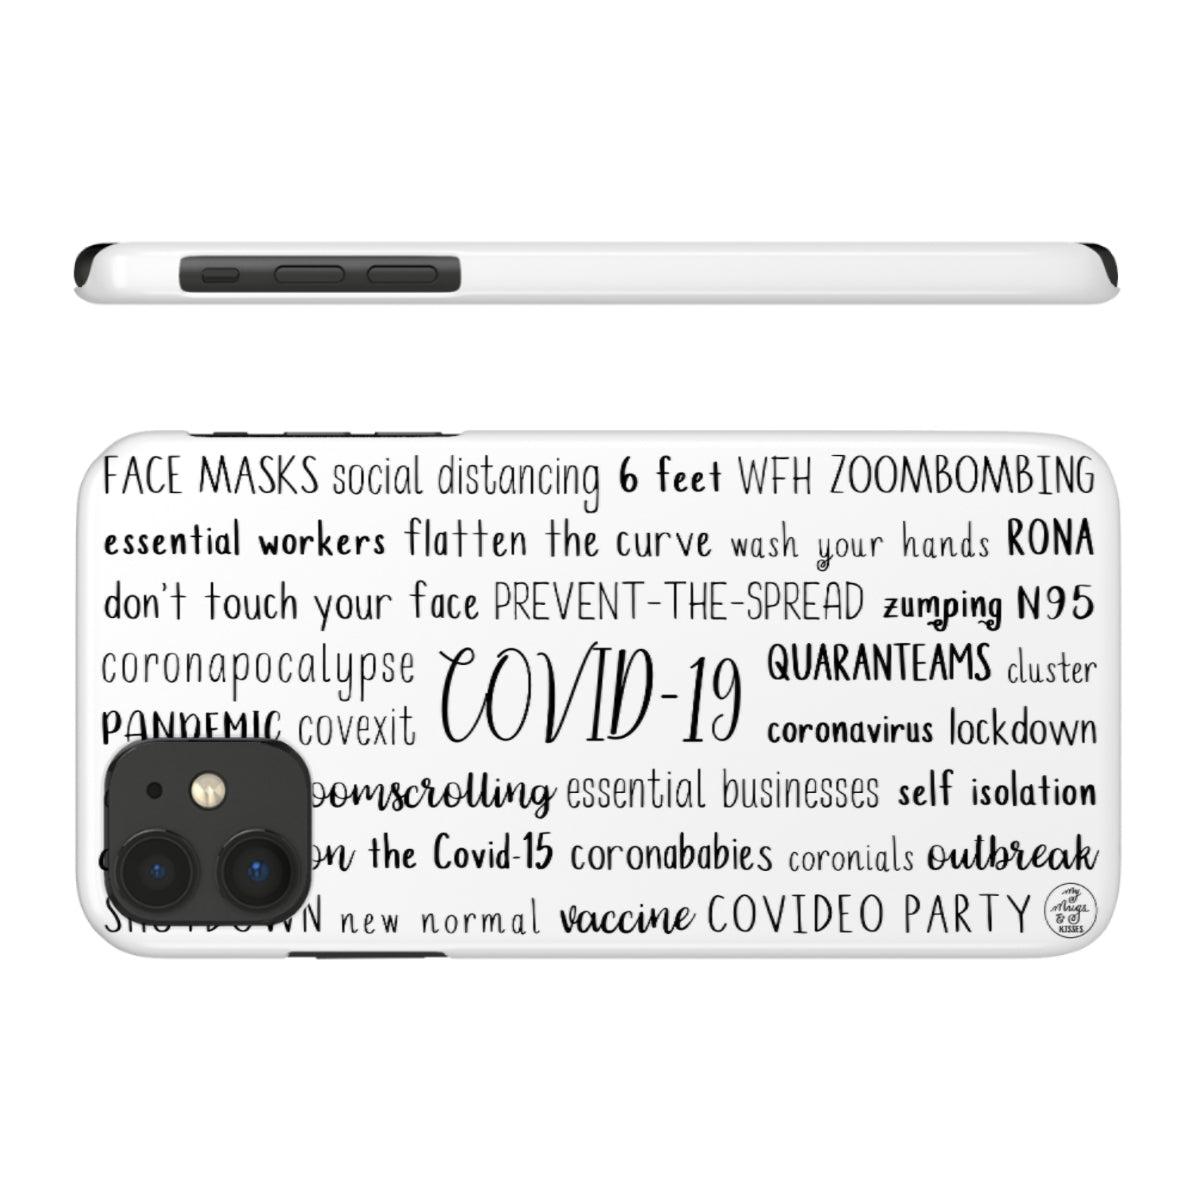 COVID-19 iPhone Case